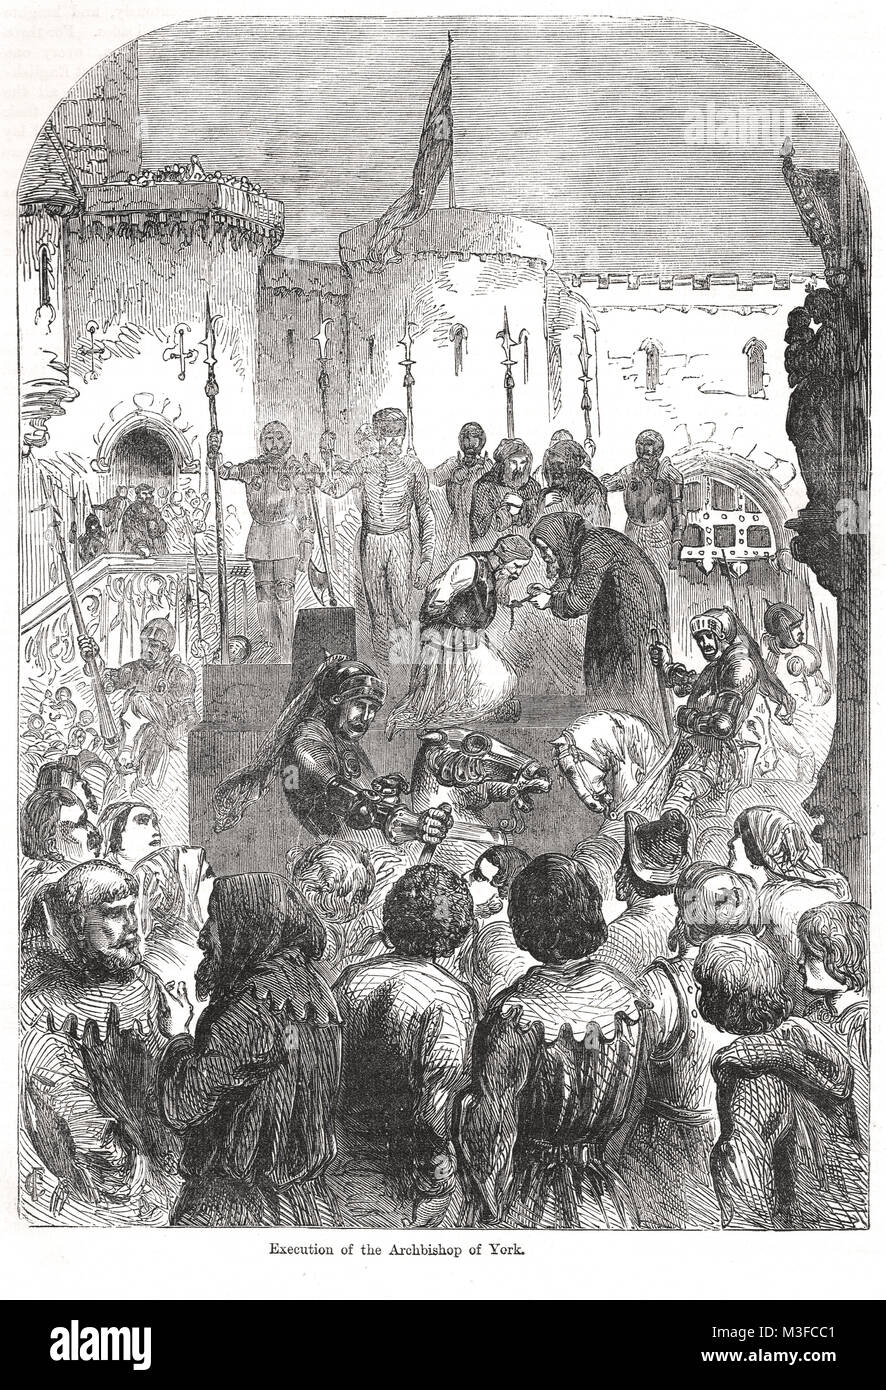 Execution of the Archbishop of York, Richard le Scrope, 8 June 1405, Northern Rising against King Henry IV - Stock Image